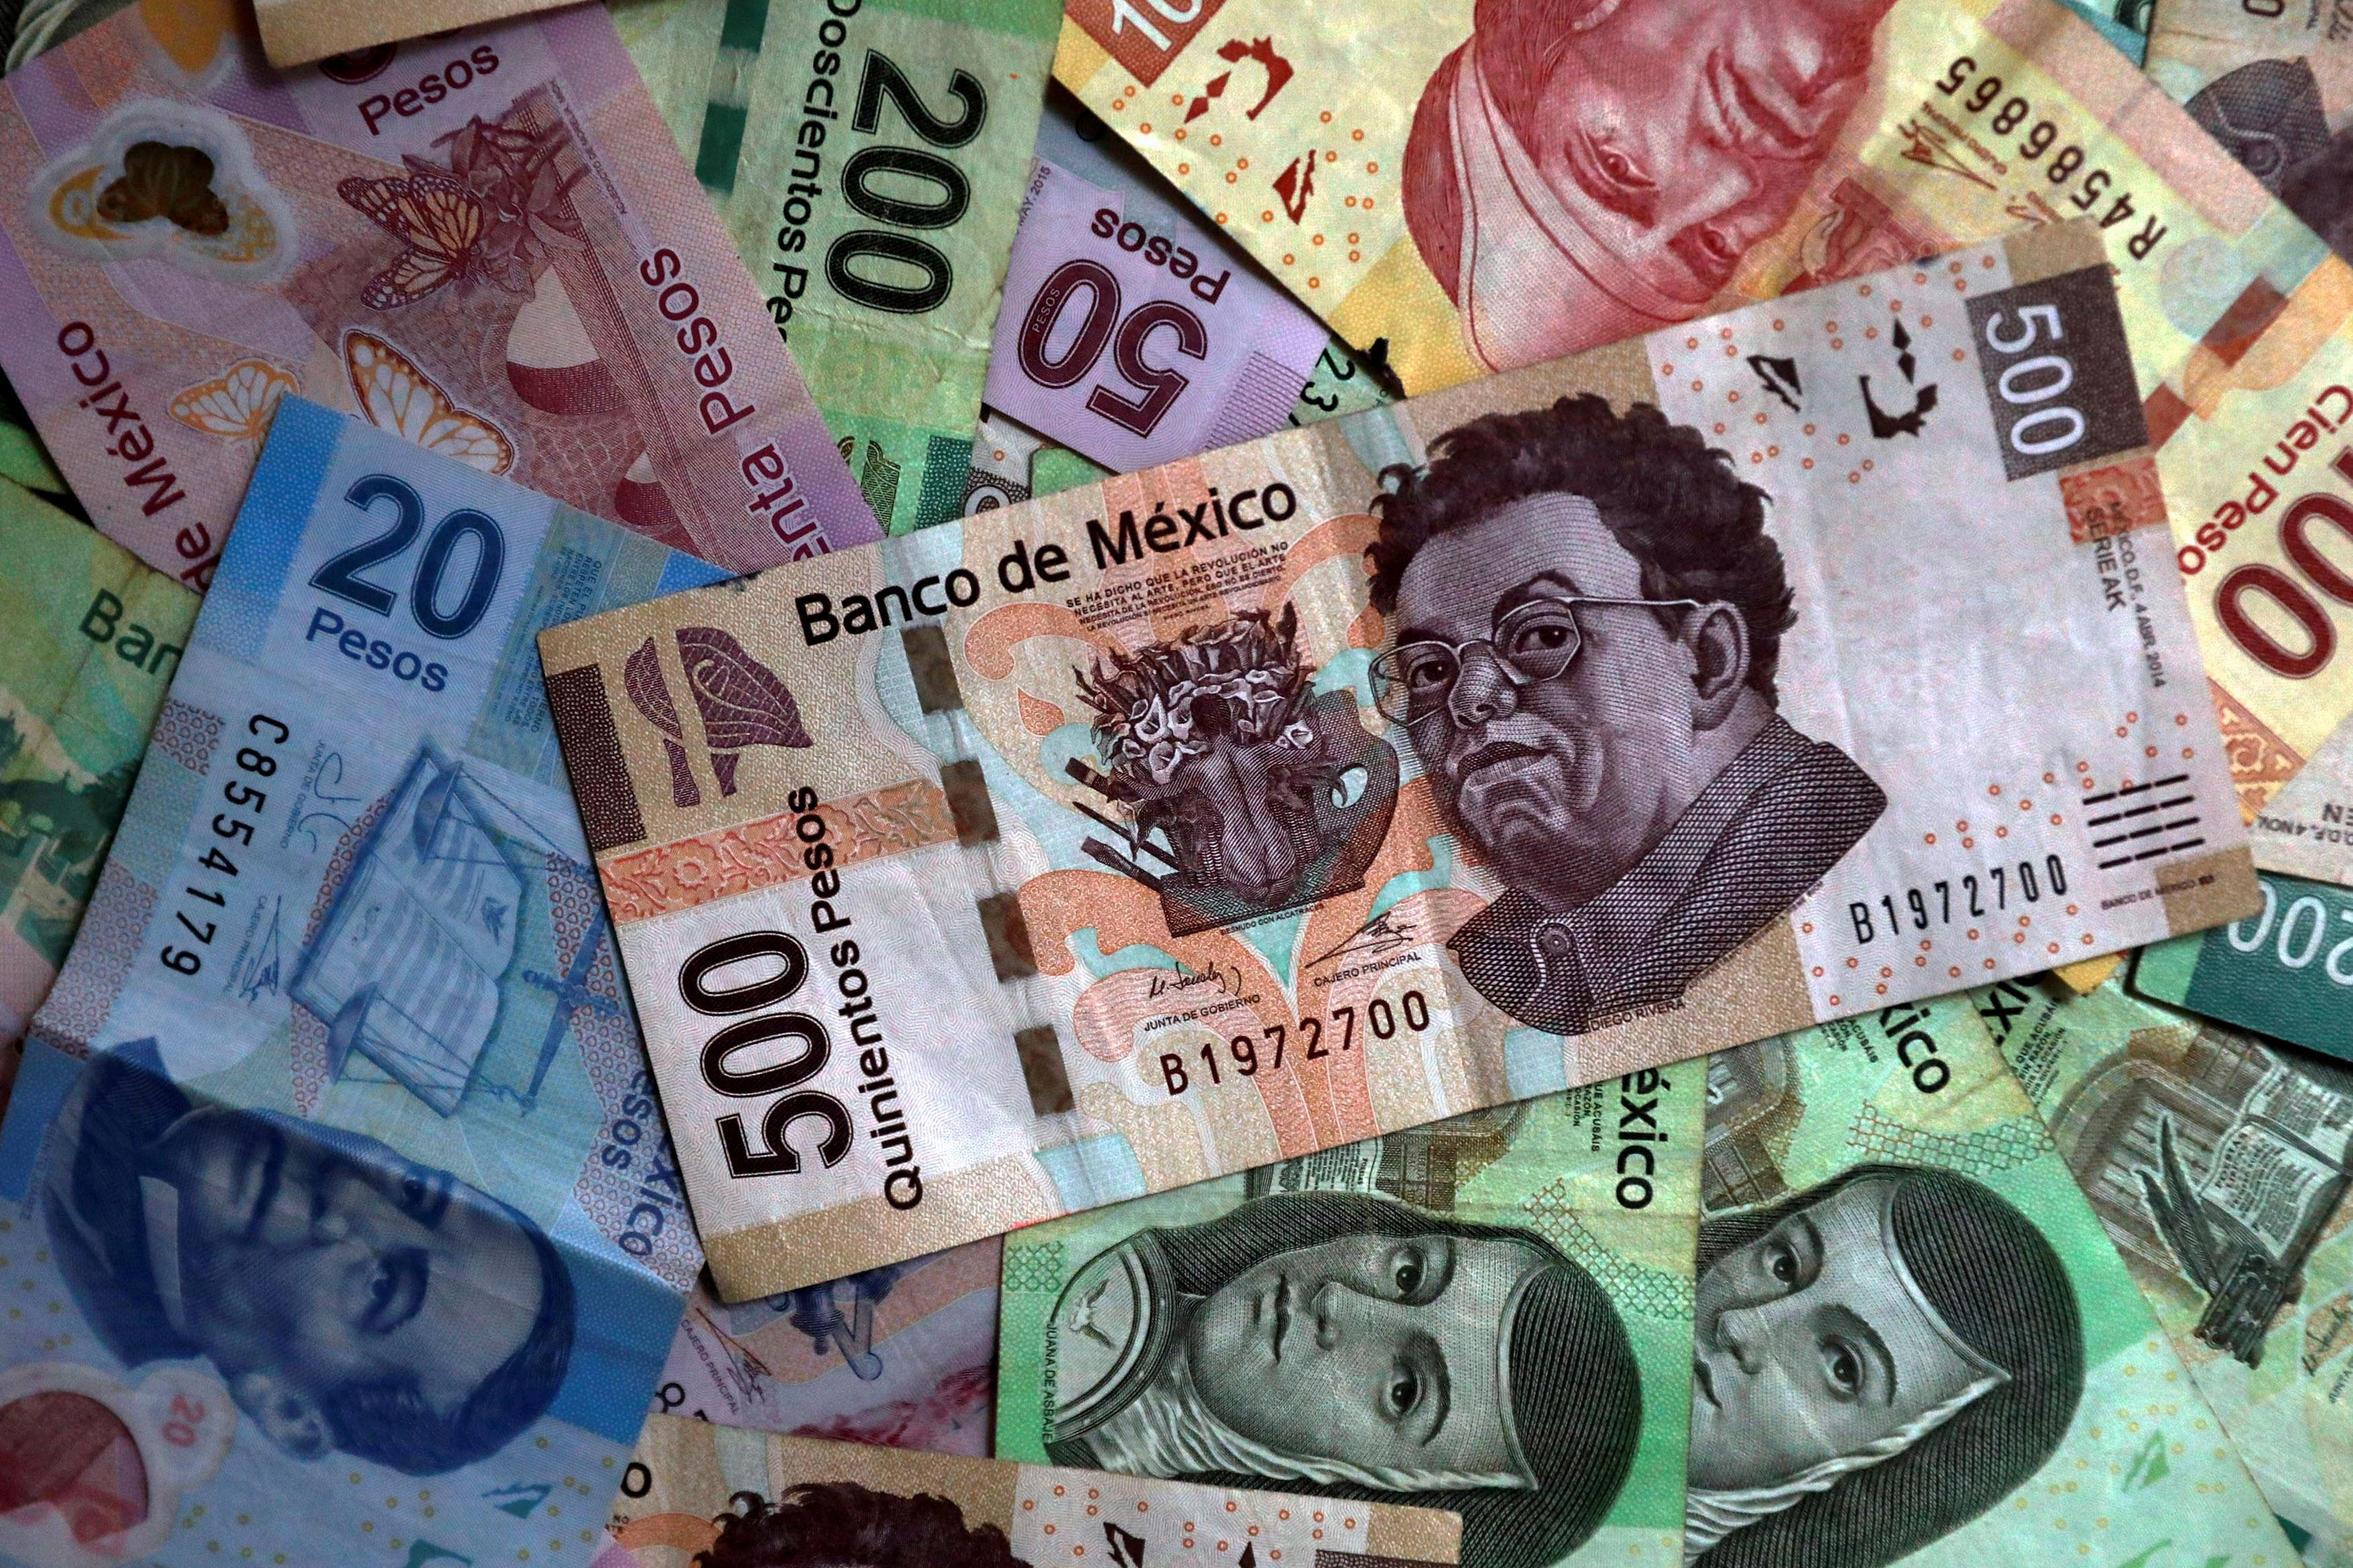 Investors react to double whammy of Mexico downgrade